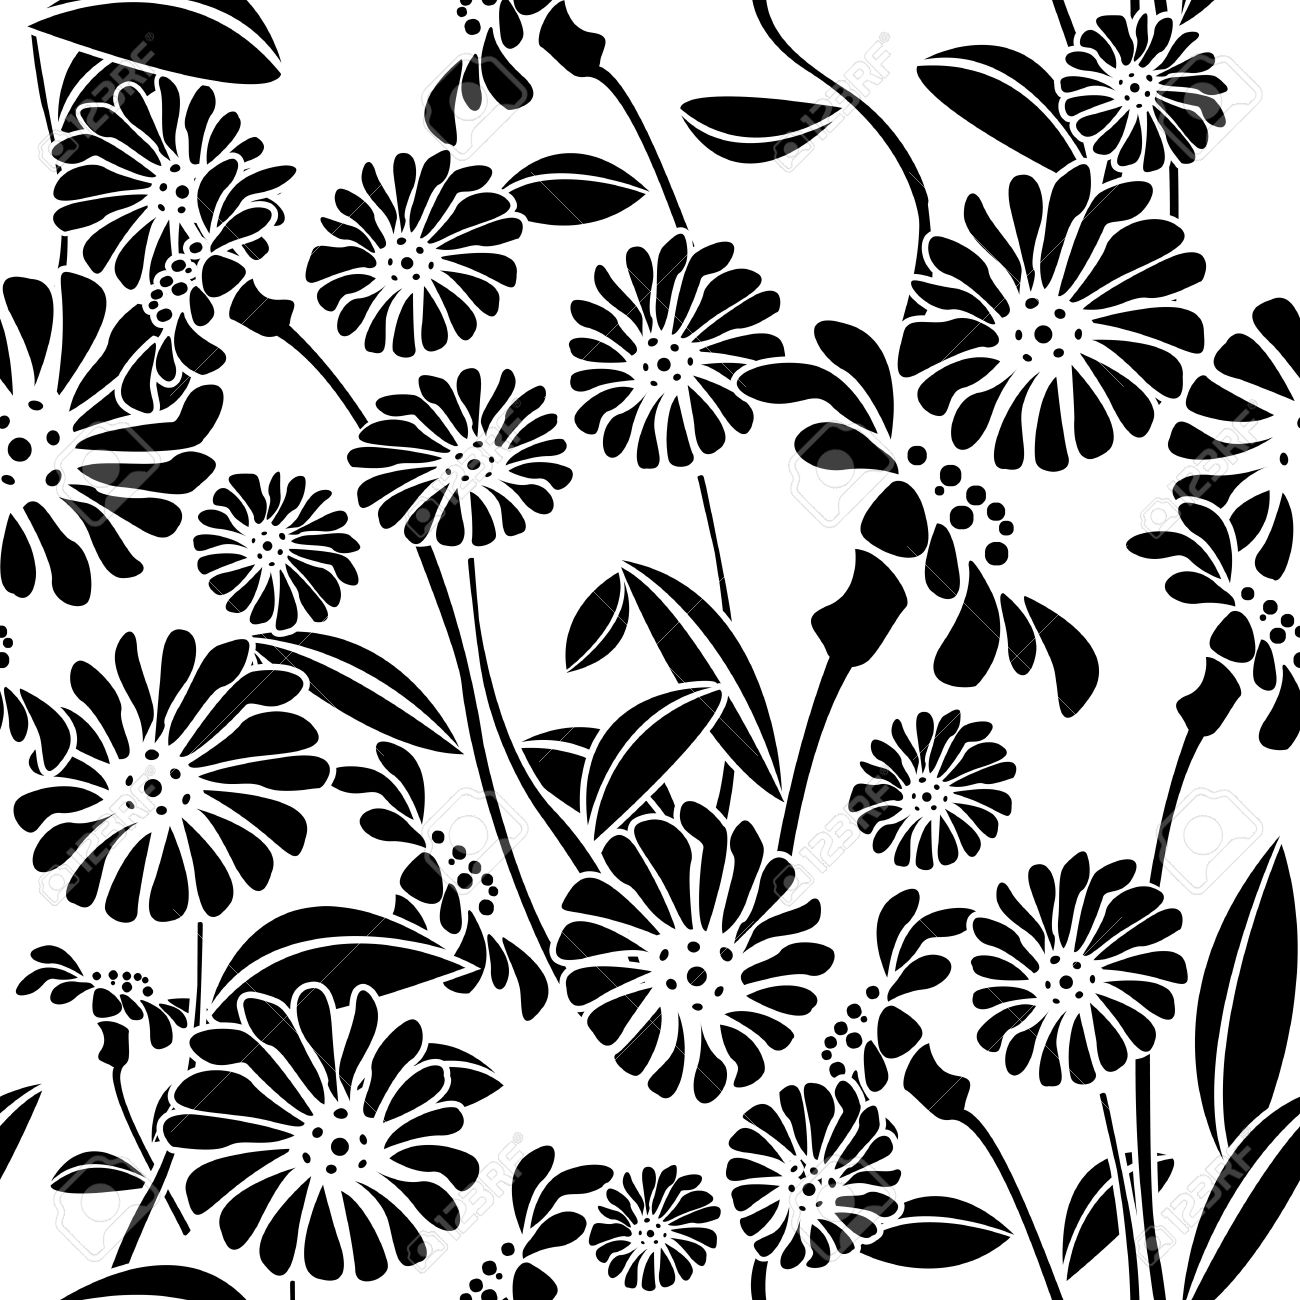 Clipart black and white patterns graphic stock Pattern clipart black and white - ClipartFest graphic stock